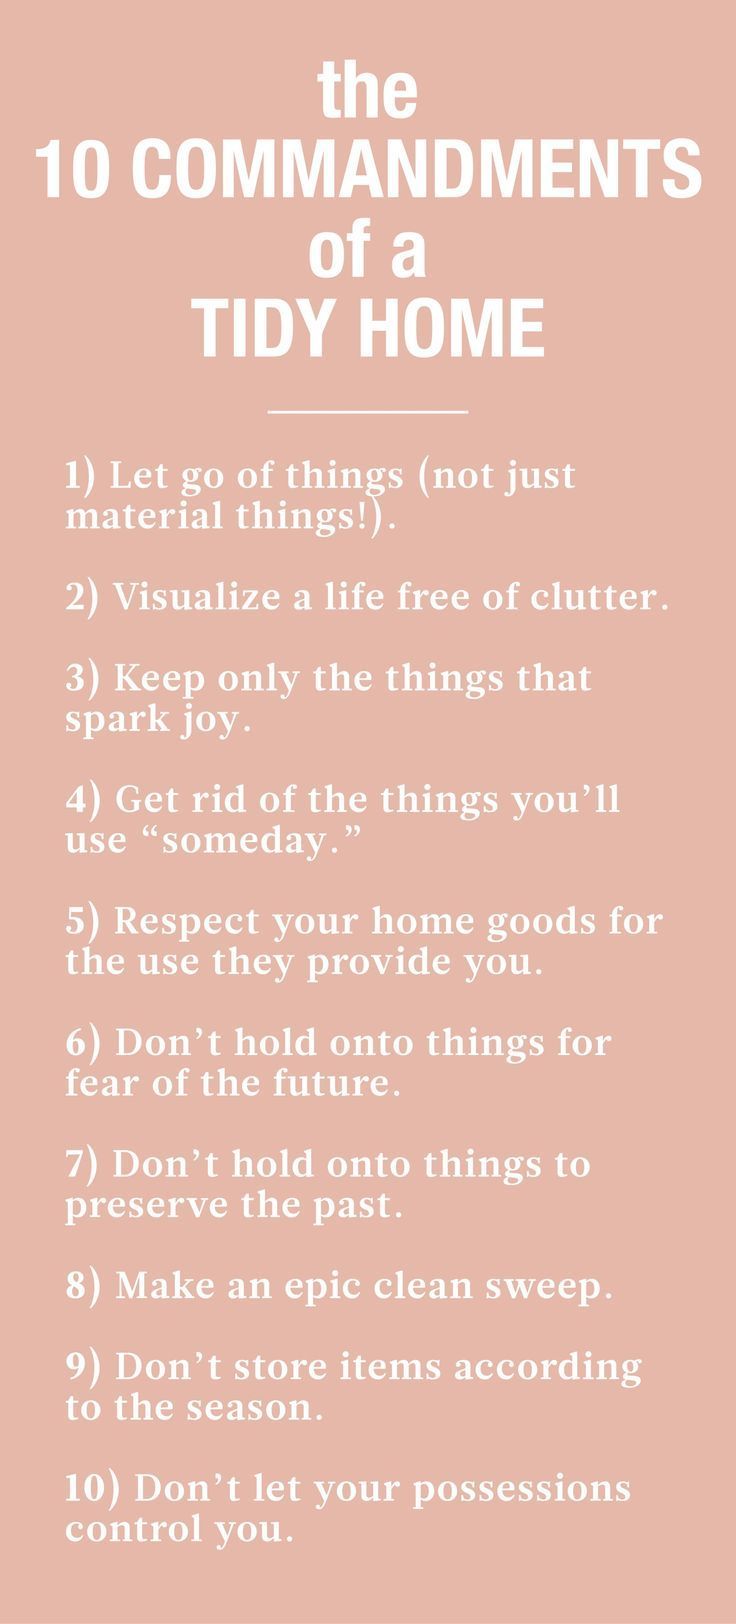 I agree with everything except #9. I prefer to have out of season clothing out of sight for more white space in my closet.